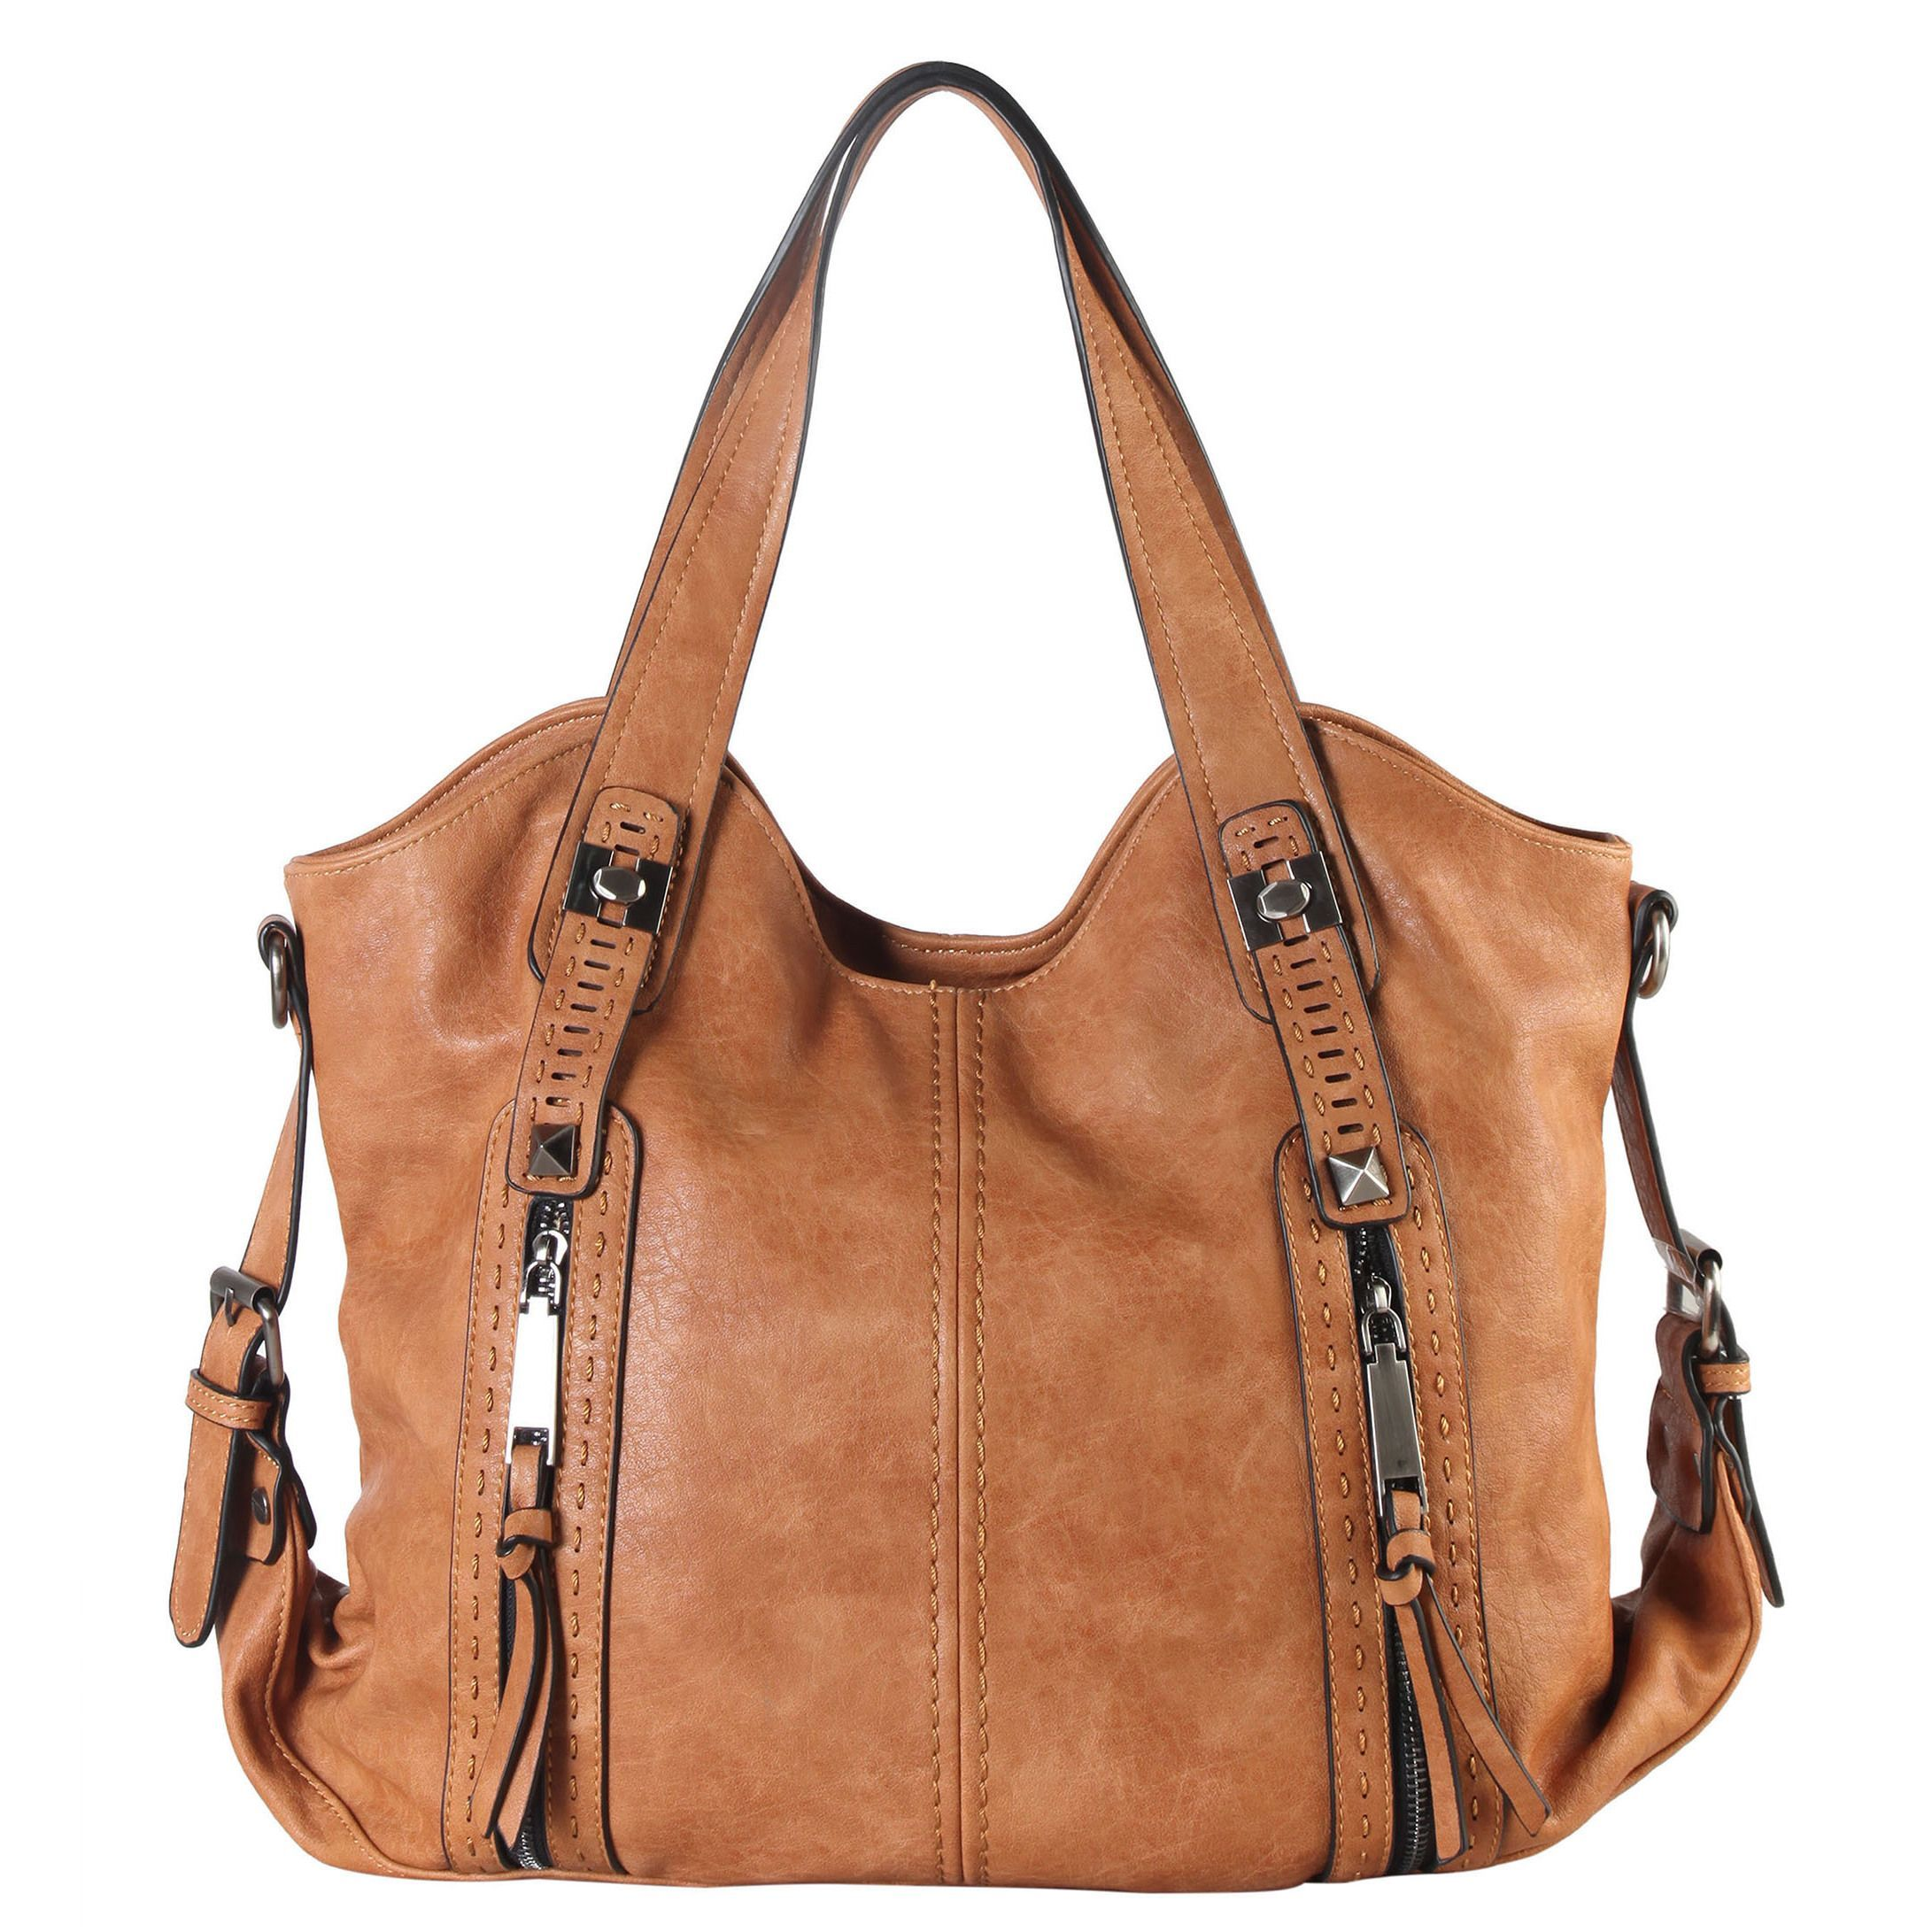 b3b82f6f6378 Diophy Faux Leather Double Front Pockets Hobo Handbag